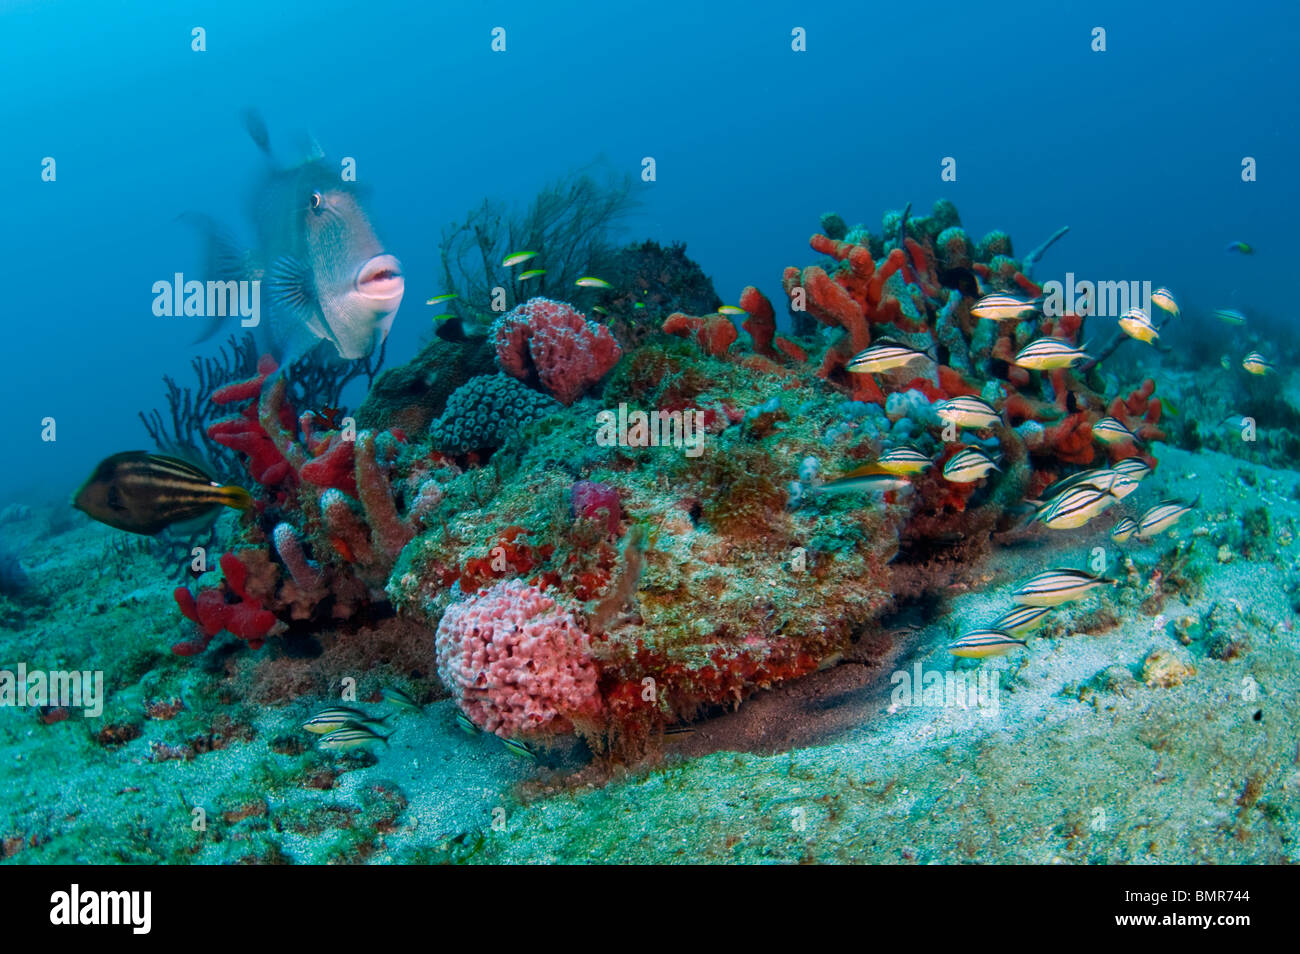 Coral Reef in Palm Beach, Florida with an assortment of invertebrates and fish species. - Stock Image